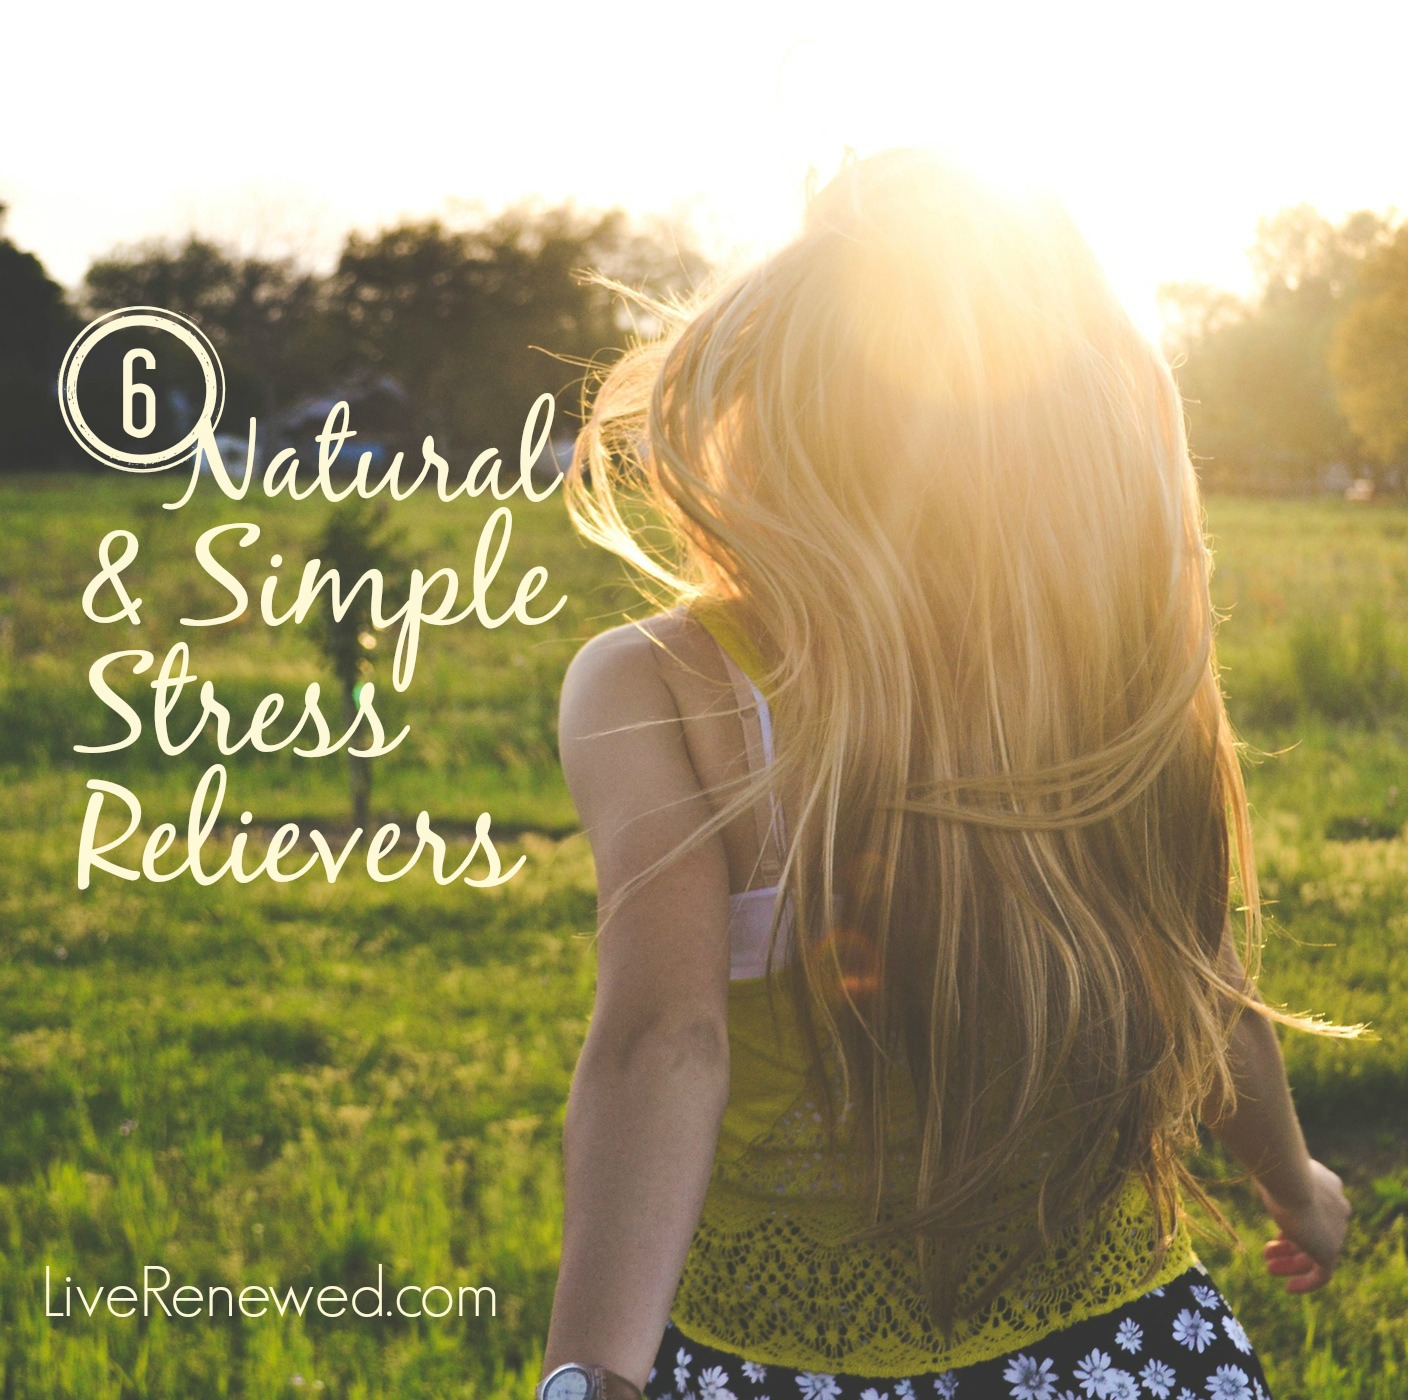 Feeling Stressed and overwhelmed? Try these 6 Natural & Simple Stress Relievers at LiveRenewed.com